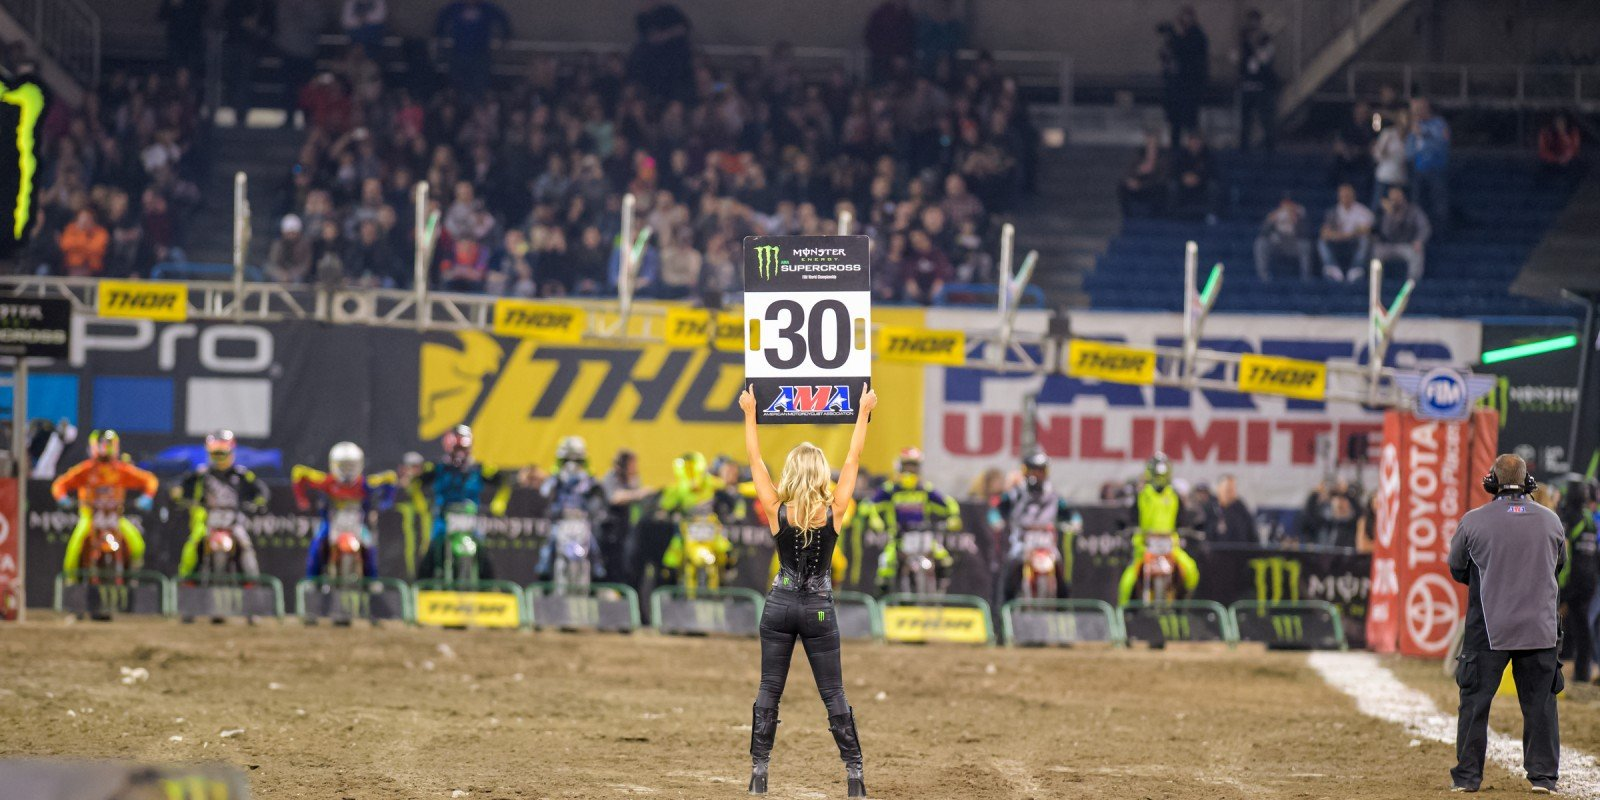 Monster Girls at the 2017 Supercross in Toronto, Canada